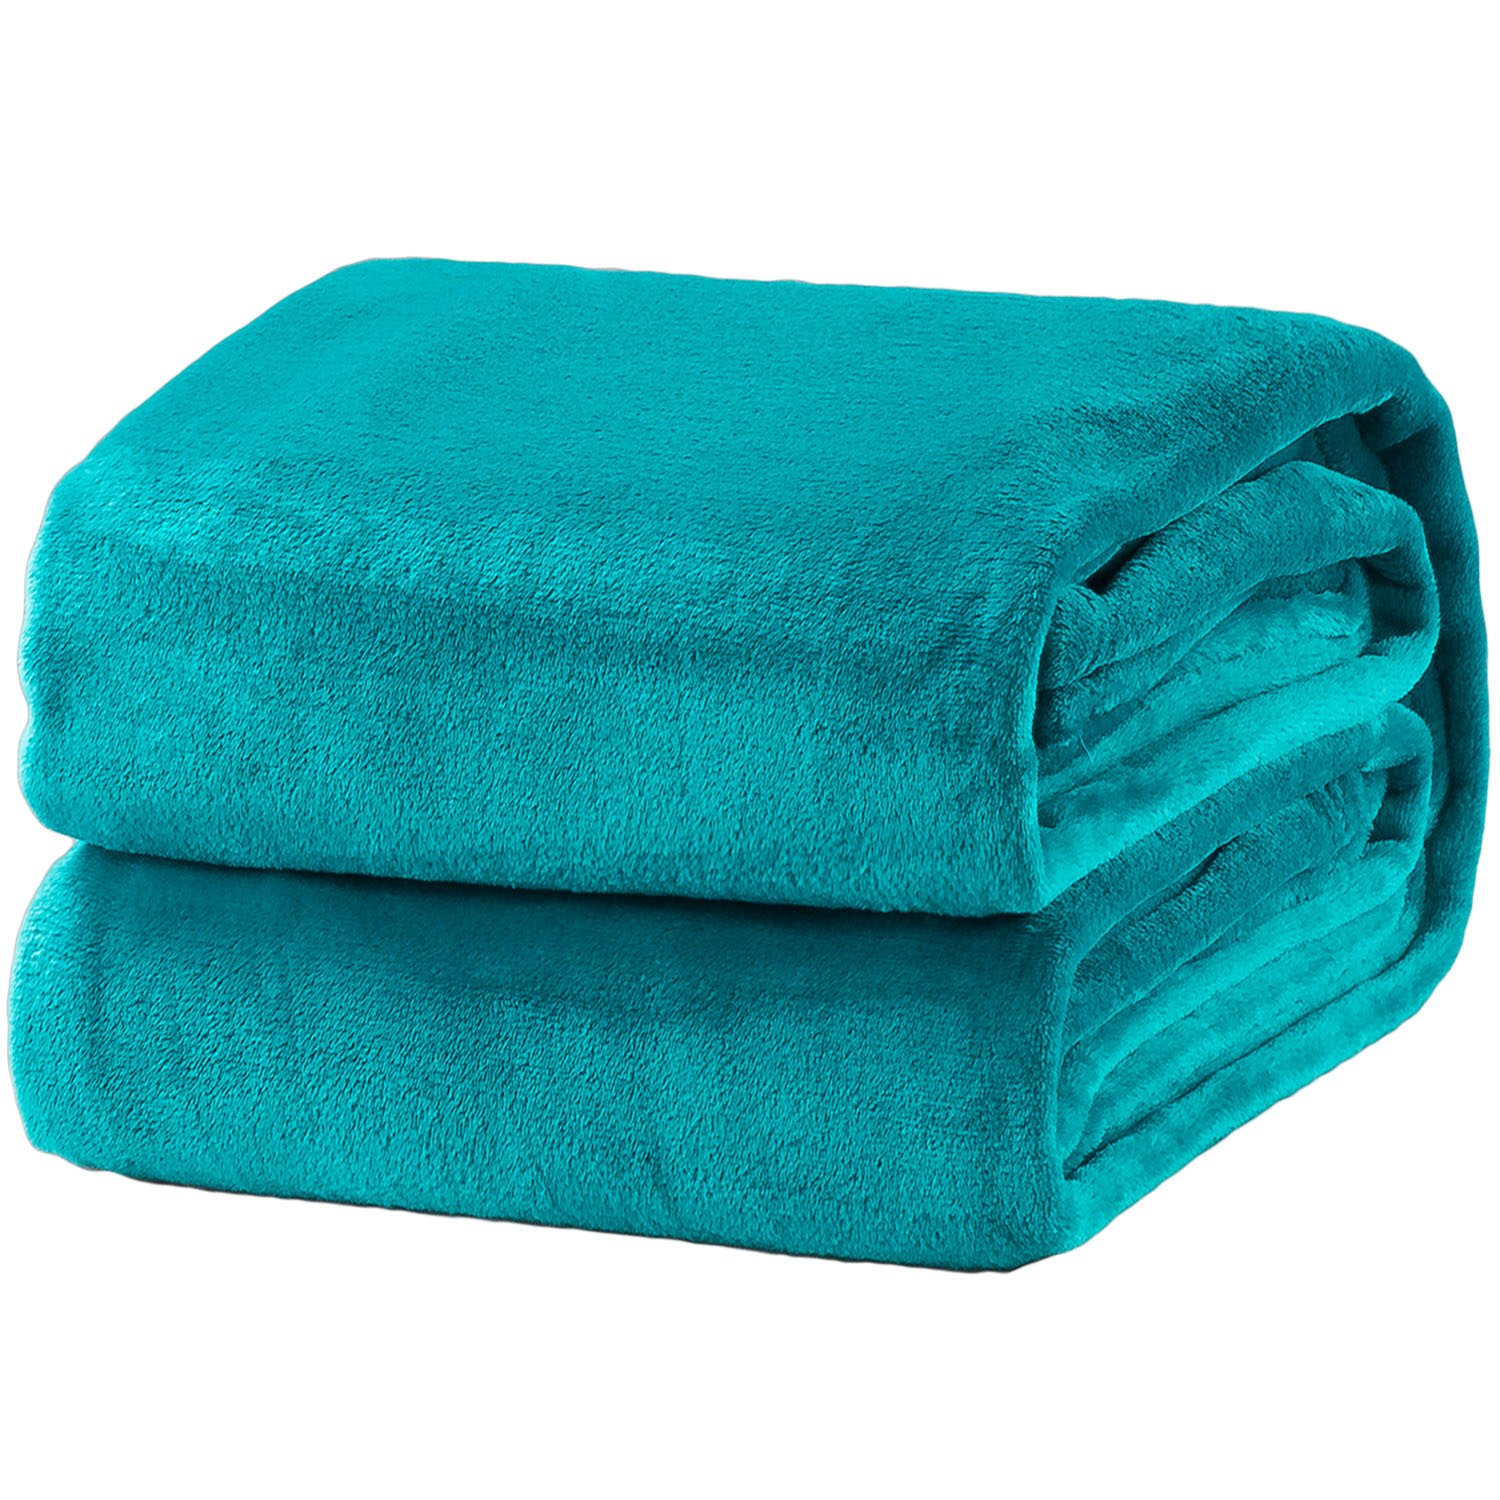 Bedsure Fleece Blanket King Size Teal Lightweight Super Soft Cozy Luxury Bed Blanket Microfiber